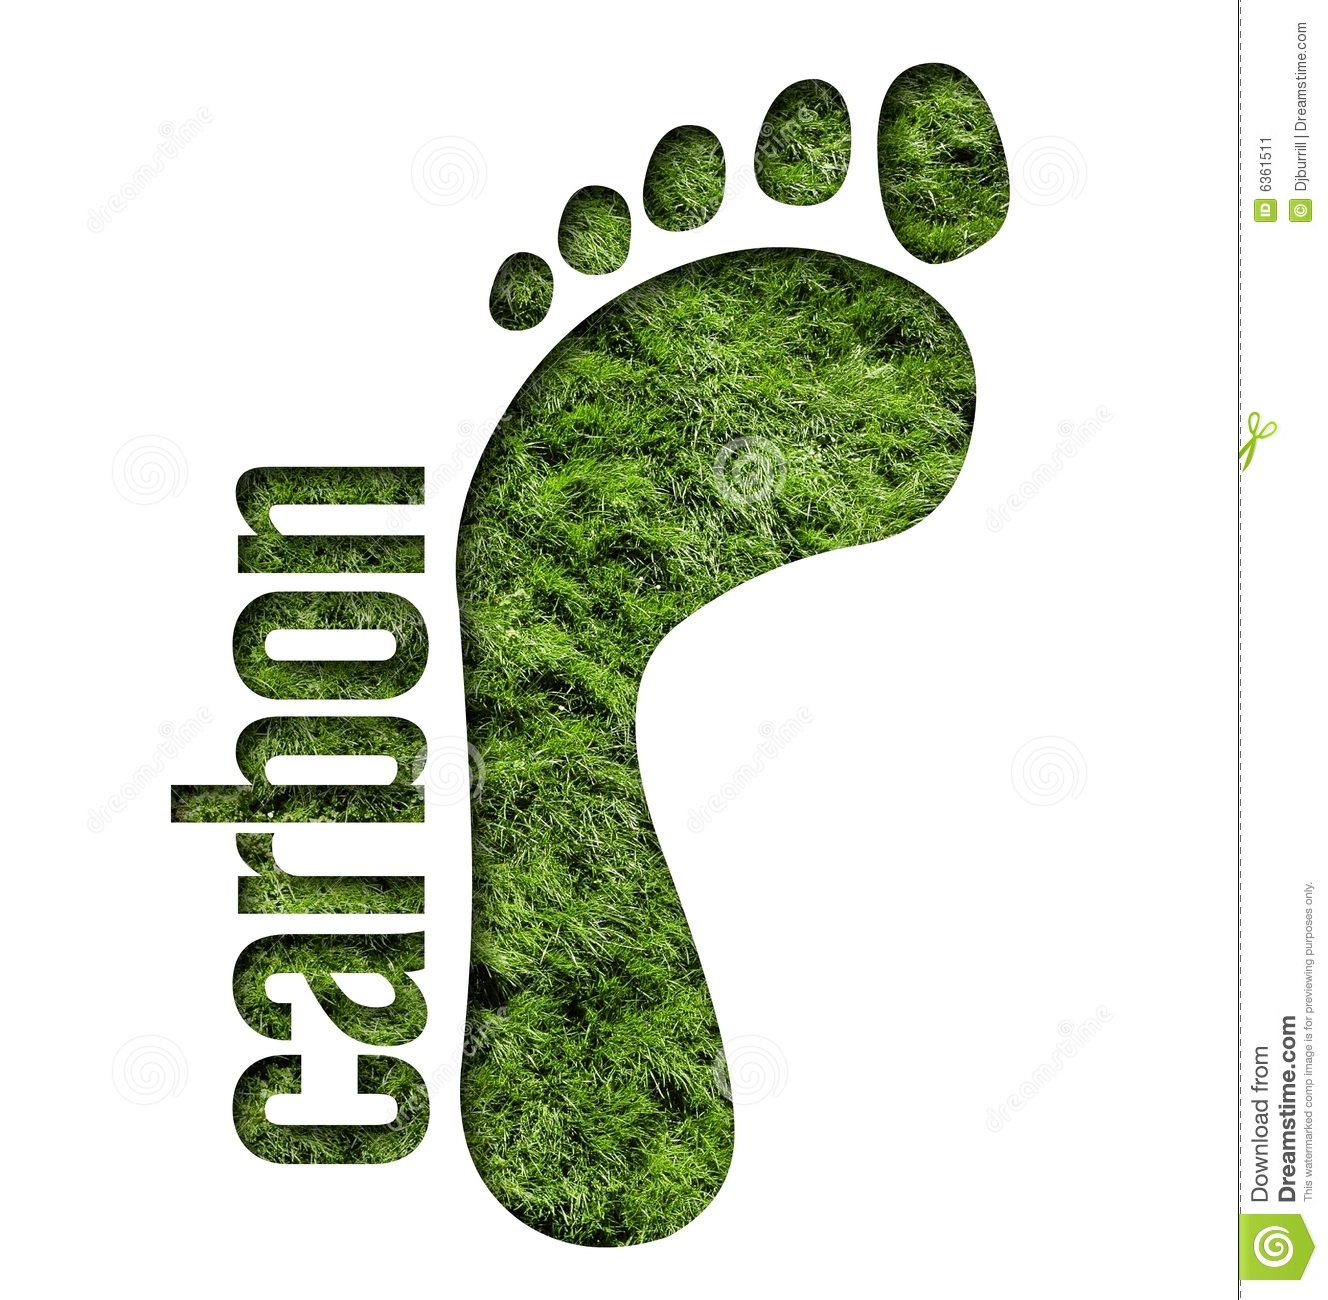 More similar stock images of ` Carbon Footprint `